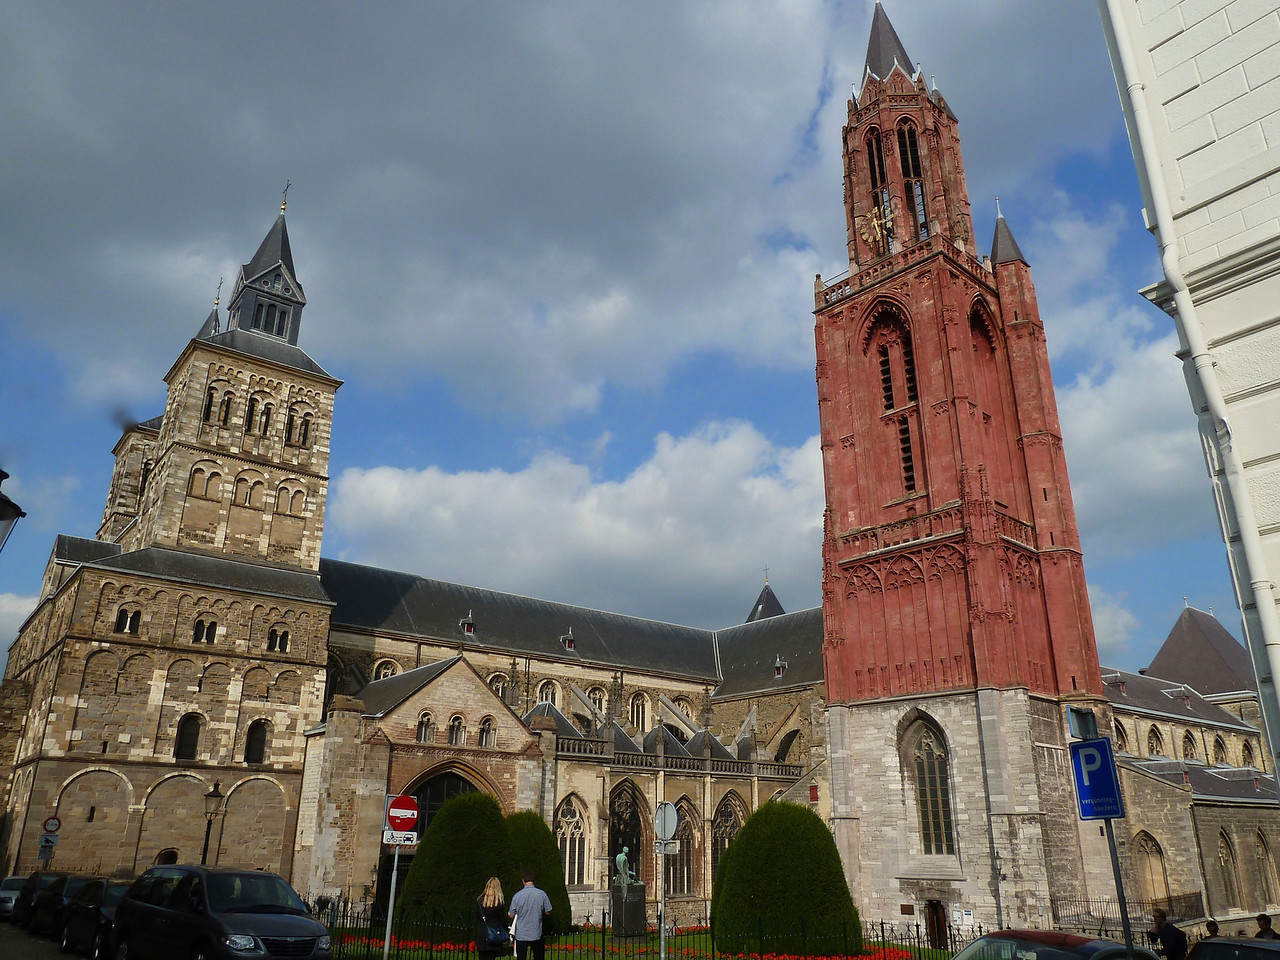 The cathedrals of Maastricht!